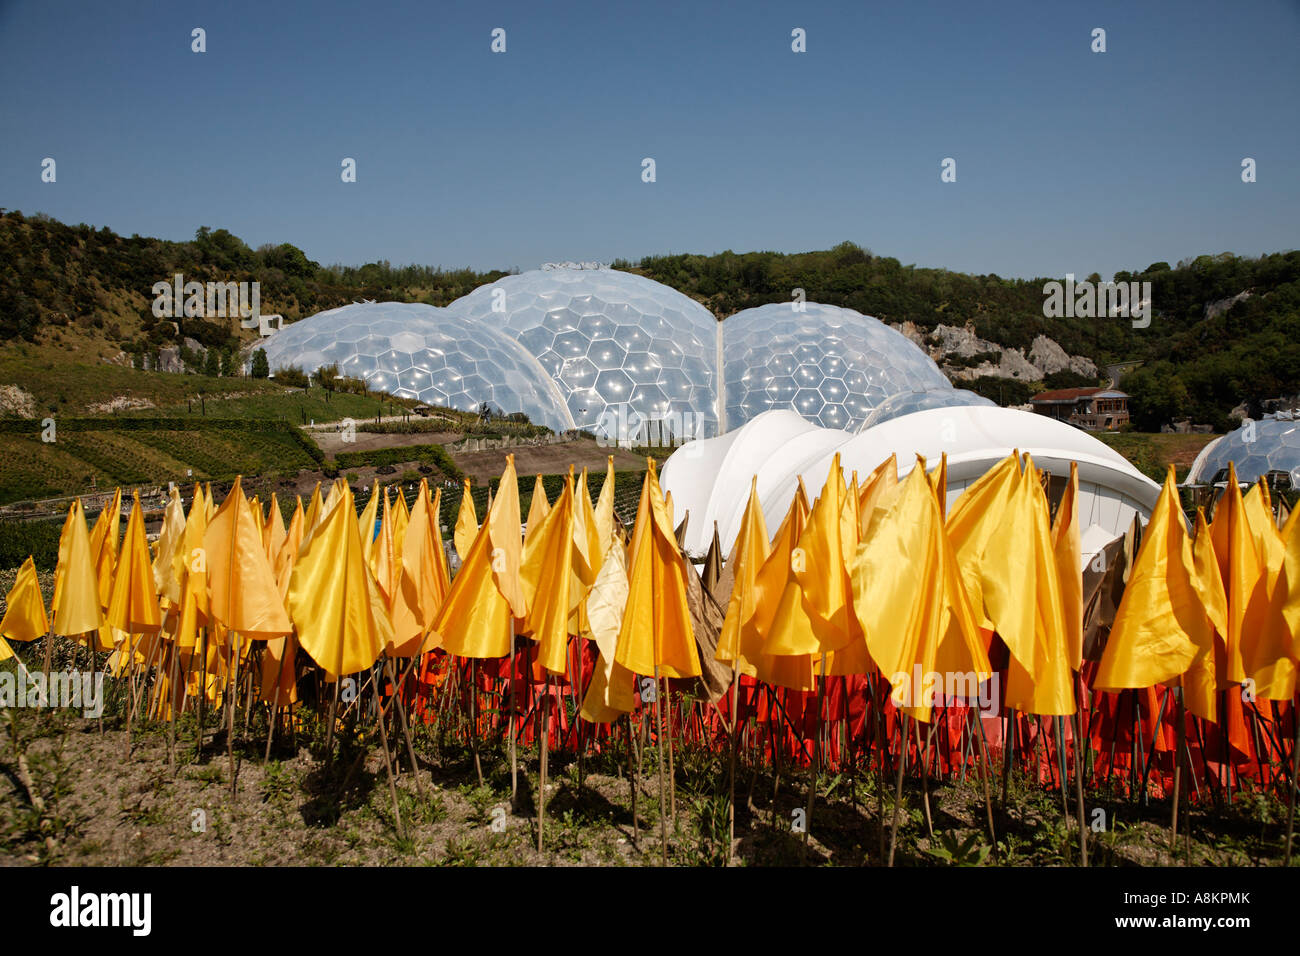 Plastic Flowers At The Eden Project Cornwall U.K. Europe Stock Photo